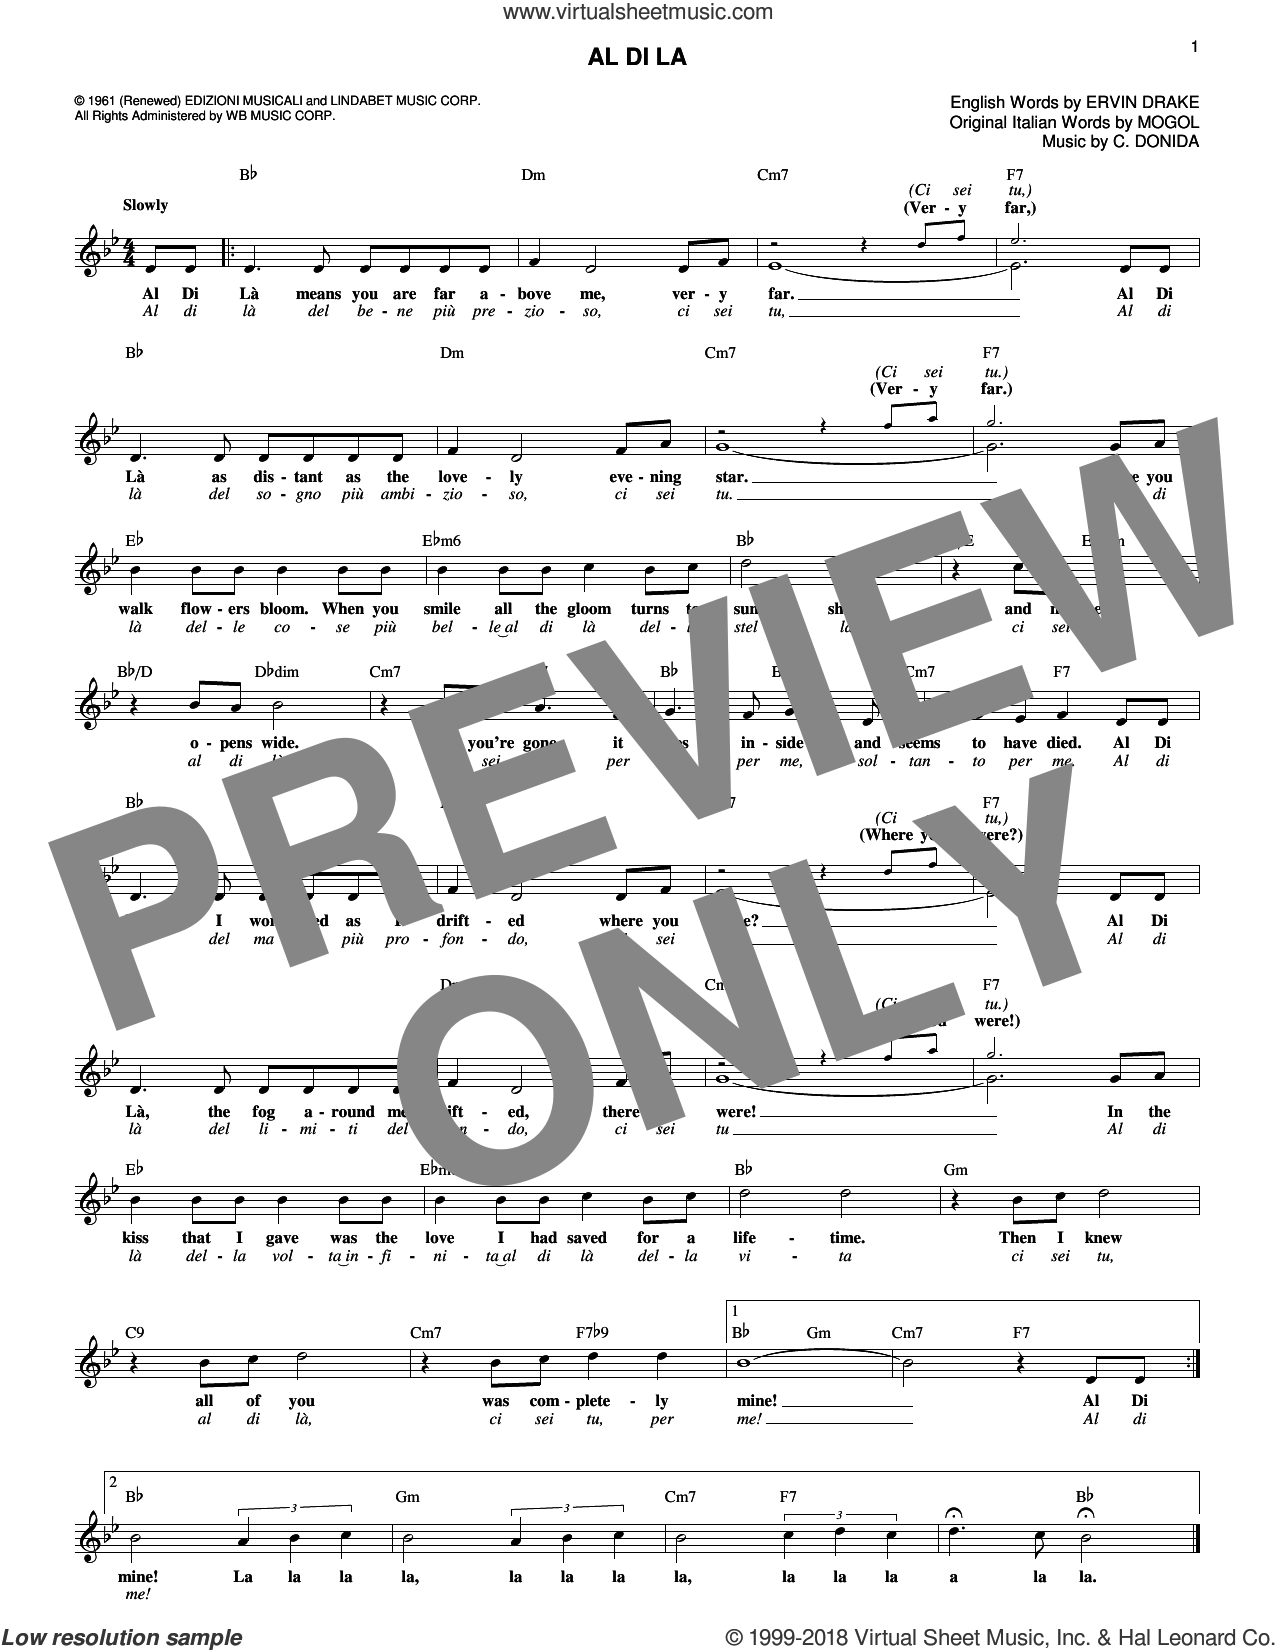 Al Di La sheet music for voice and other instruments (fake book) by Ervin Drake, Connie Francis, Emilio Pericoli, Ray Charles Singers, C. Donida and Mogol, intermediate skill level